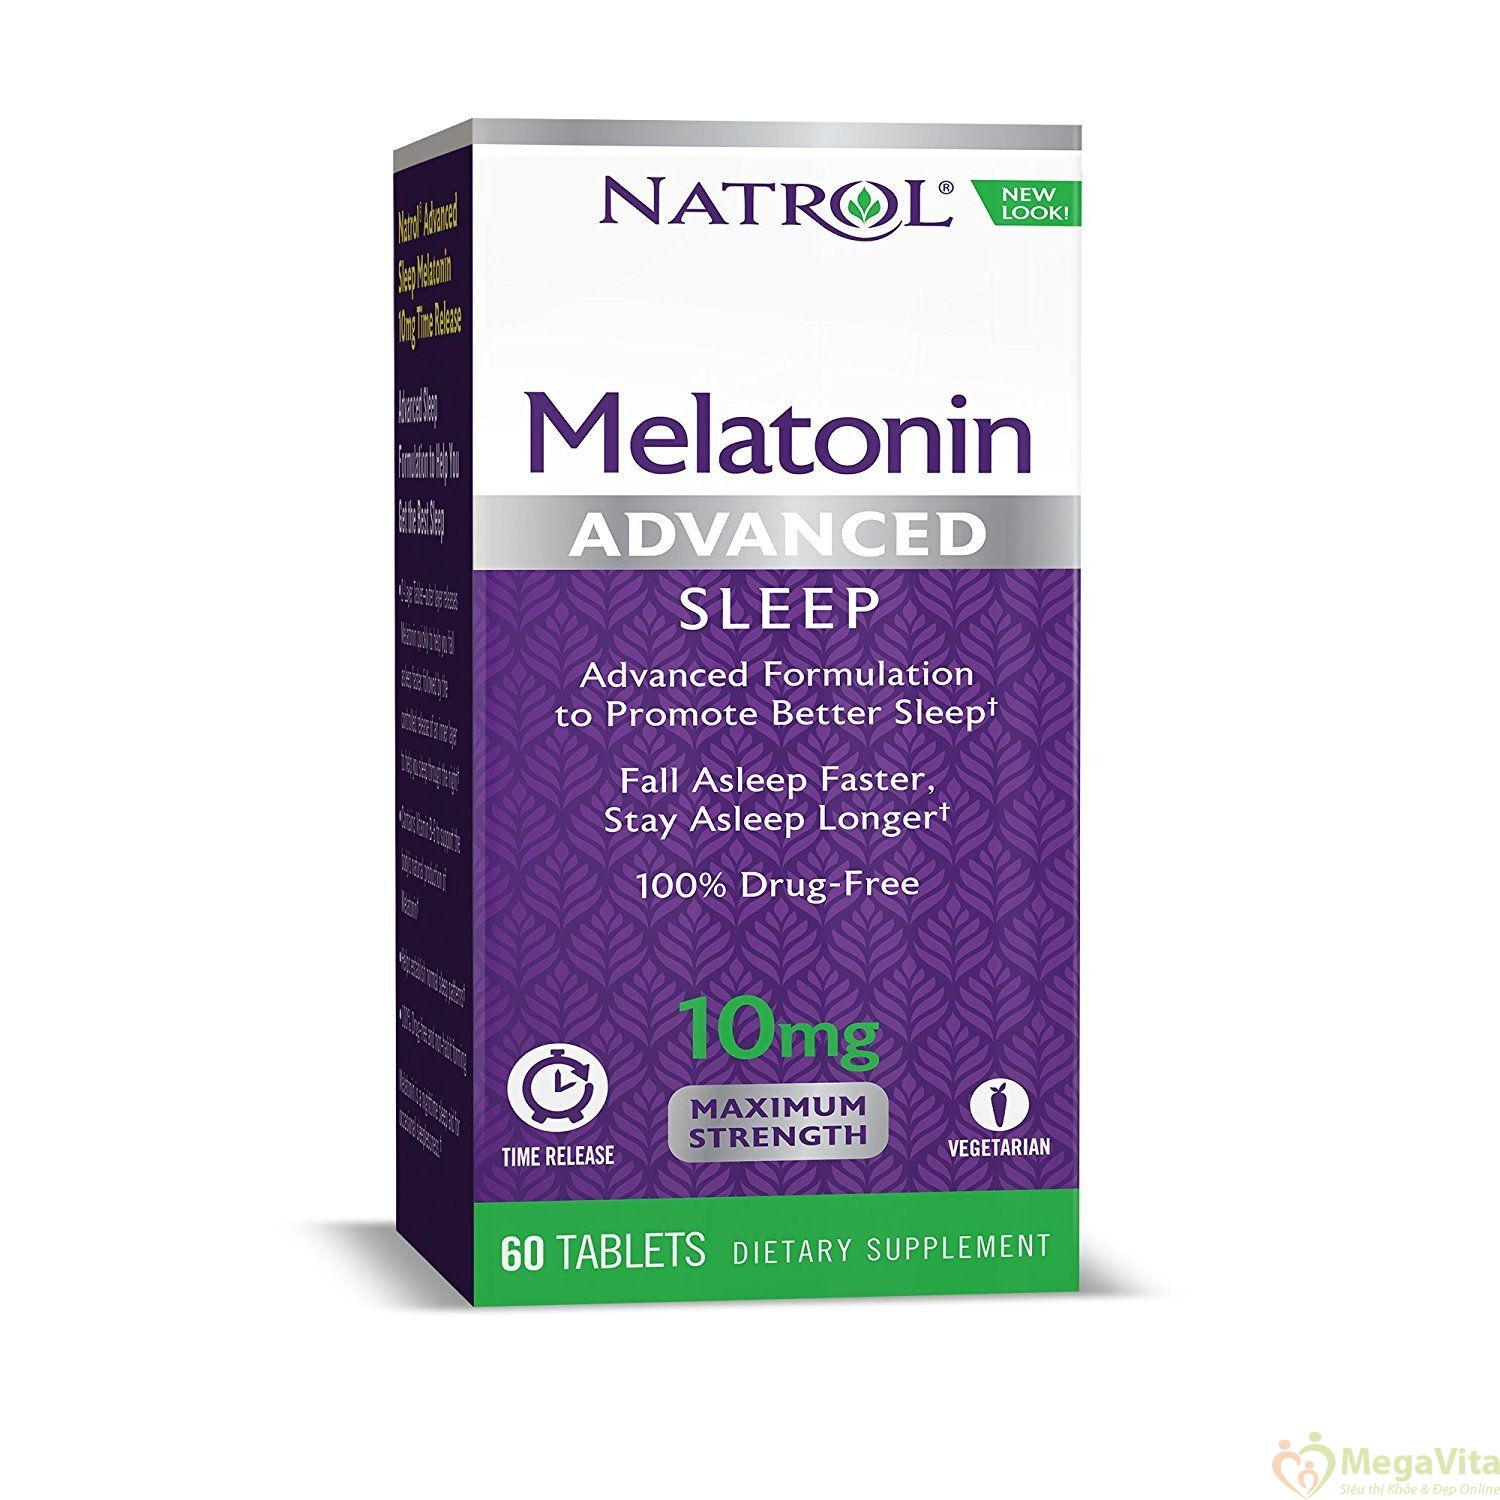 Natrol® melatonin 10mg